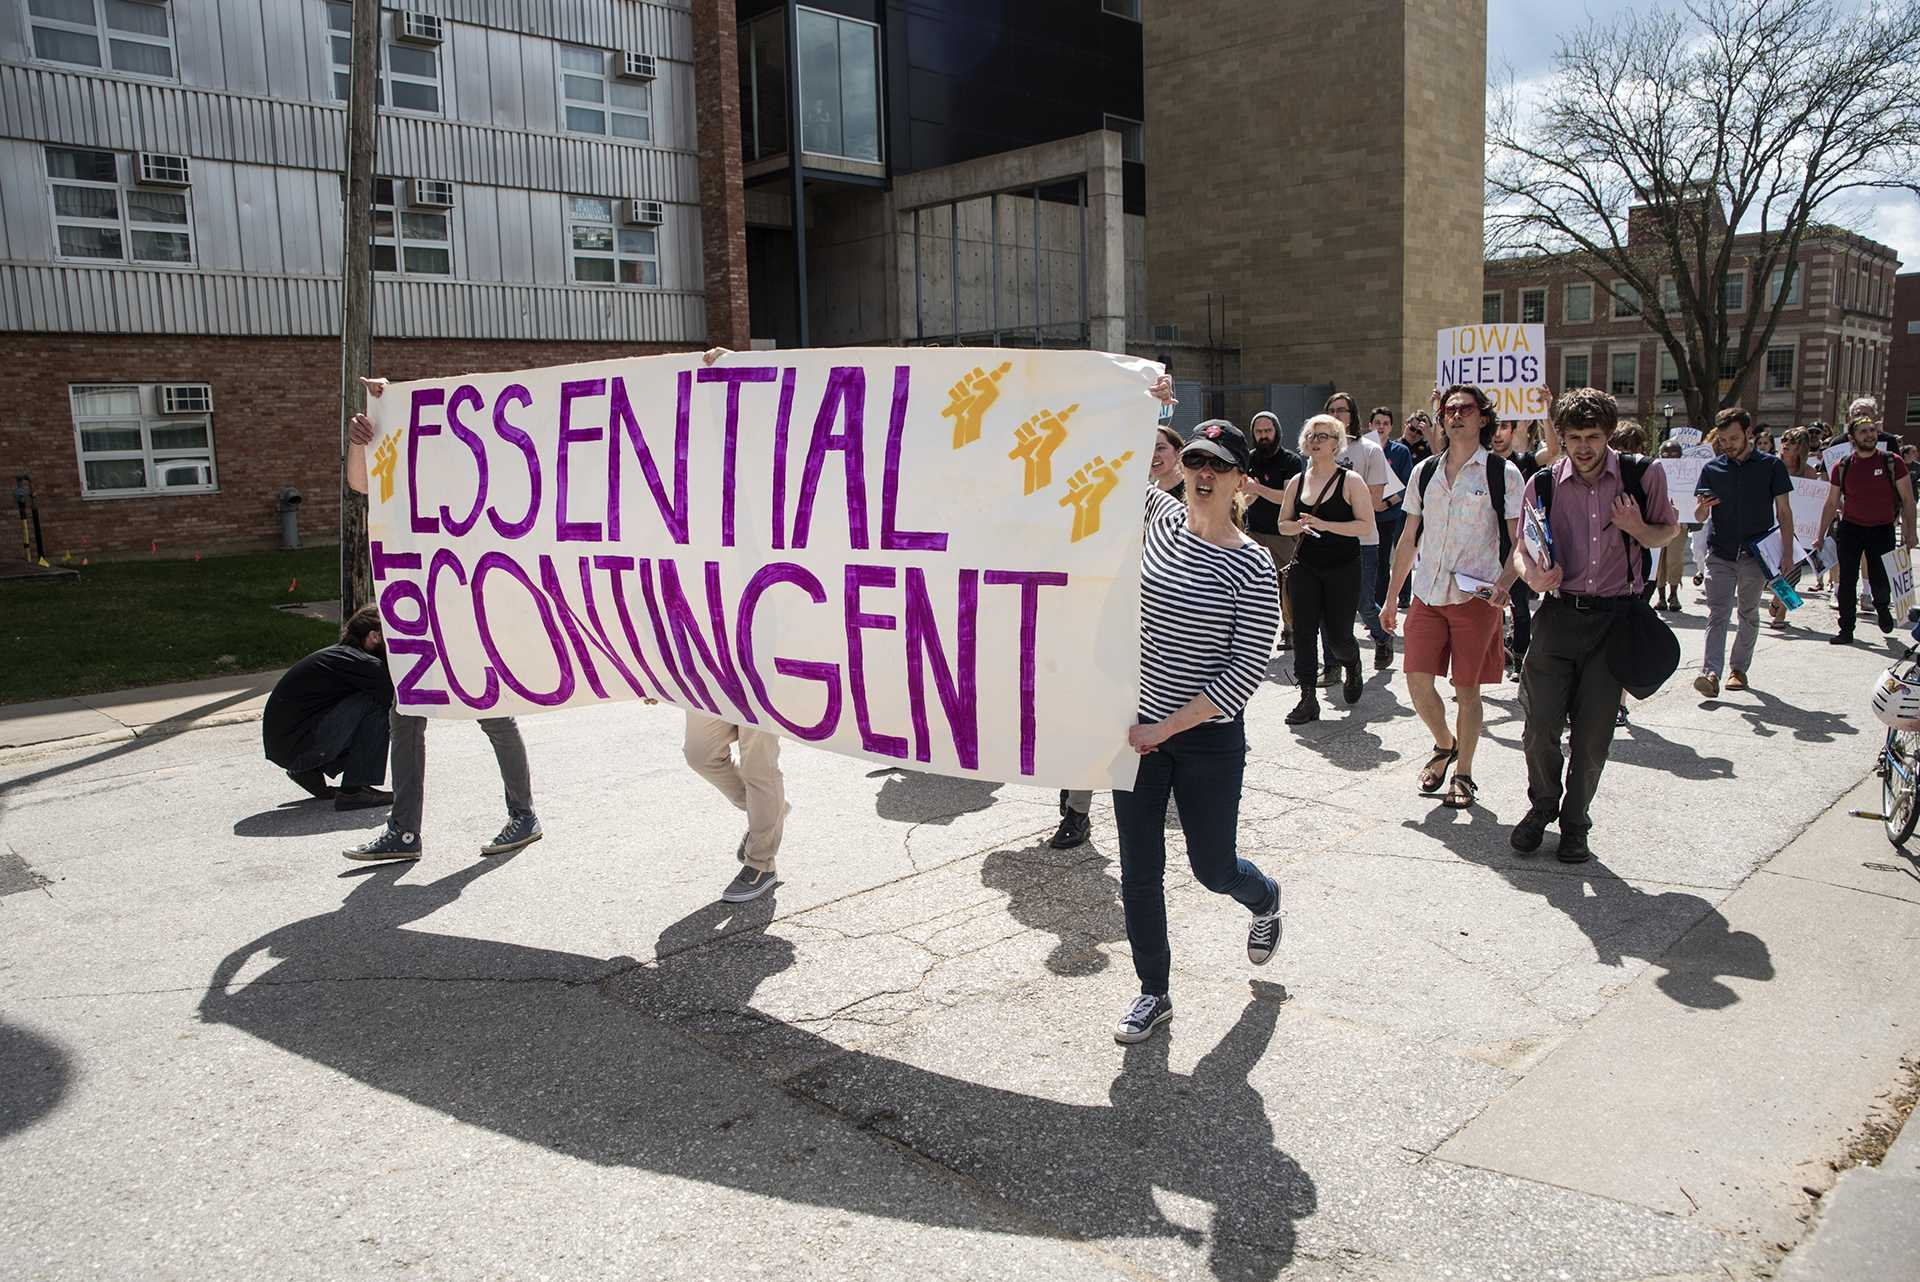 Despite winning expanded healthcare benefits, UI faculty continues fight for rights